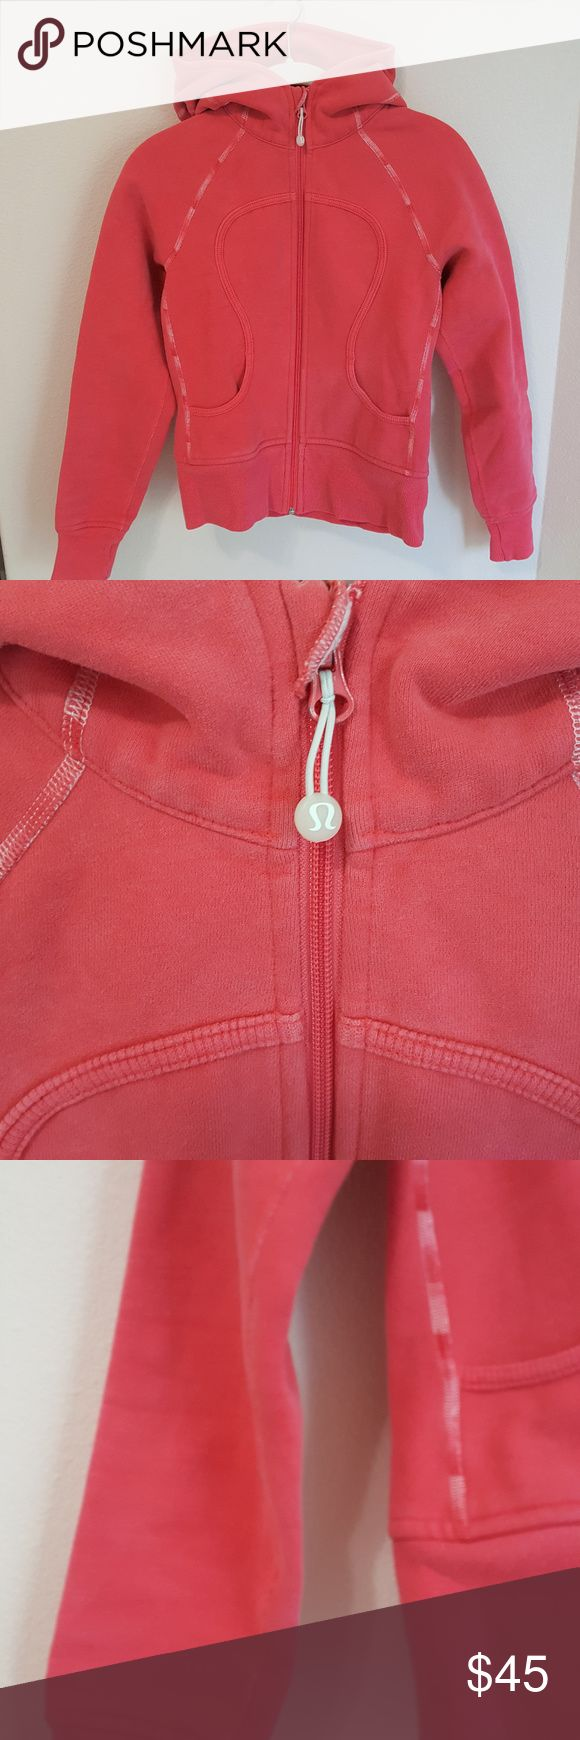 Lululemon Scuba Hoodie This heathered red Scuba is so cute. It's one of the older versions so it is a bit shorter and doesn't have the thumbholes, but the seams have this amazing hombre effect on them that I love. I bought this from someone else without seeing it in person so I was frustrated when the photos represented it as a bright red and was listed as a size 10 with tags removed. Really it's a dusty, heathered red and fits more like an 8. But very cute! lululemon athletica Tops…